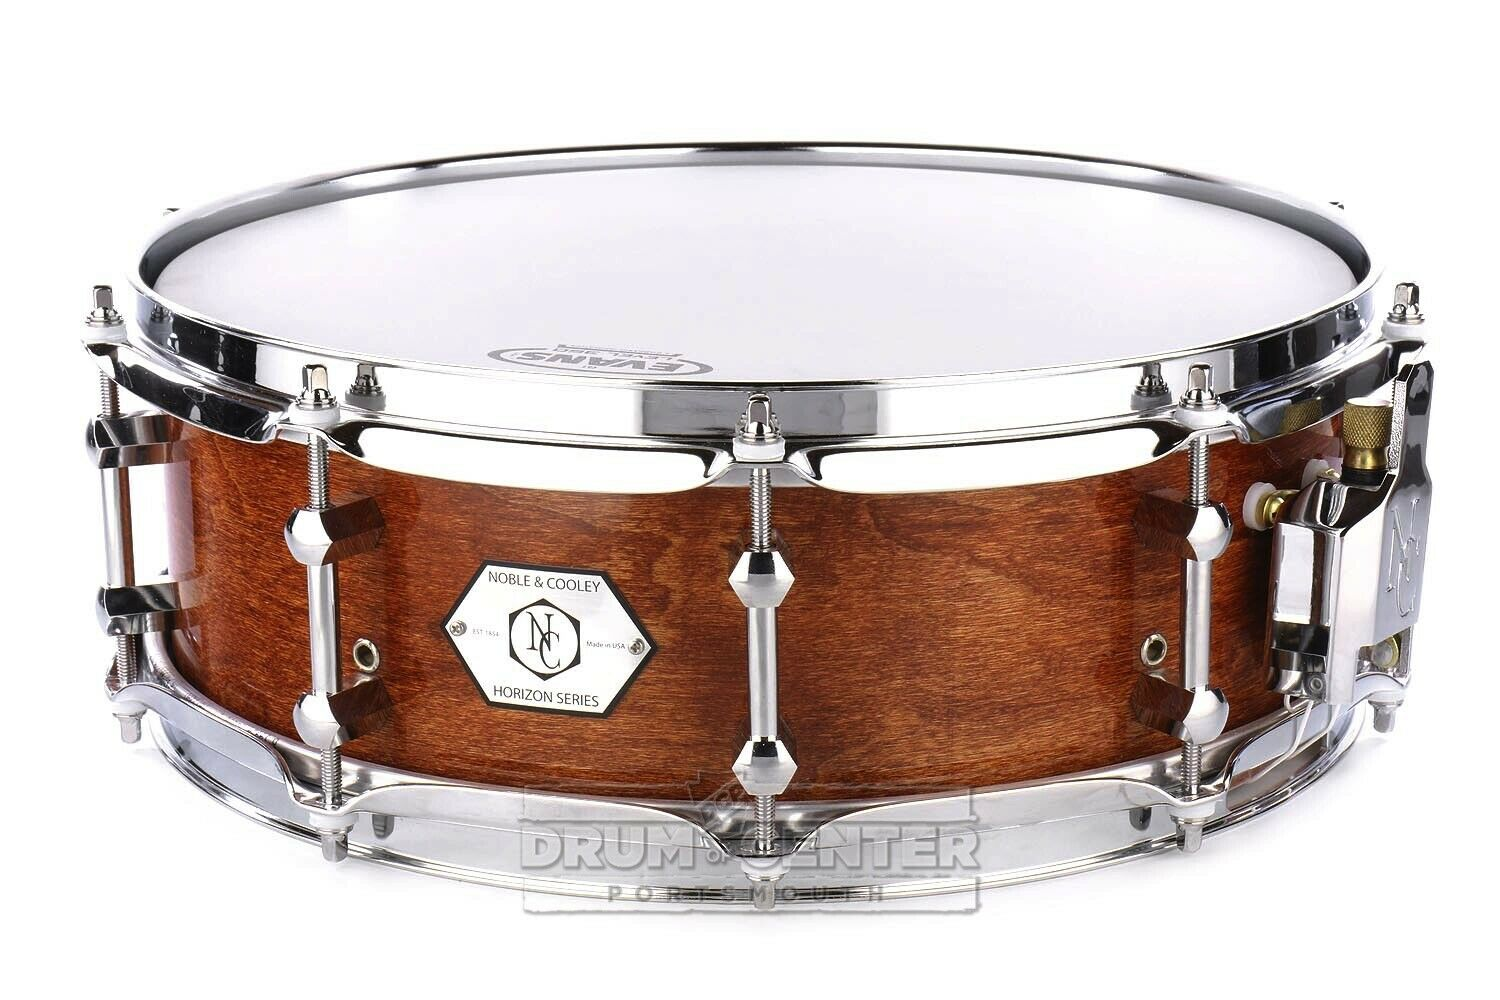 Noble And Cooley Horizon Snare Drum 14x4.75 Honey Maple Gloss